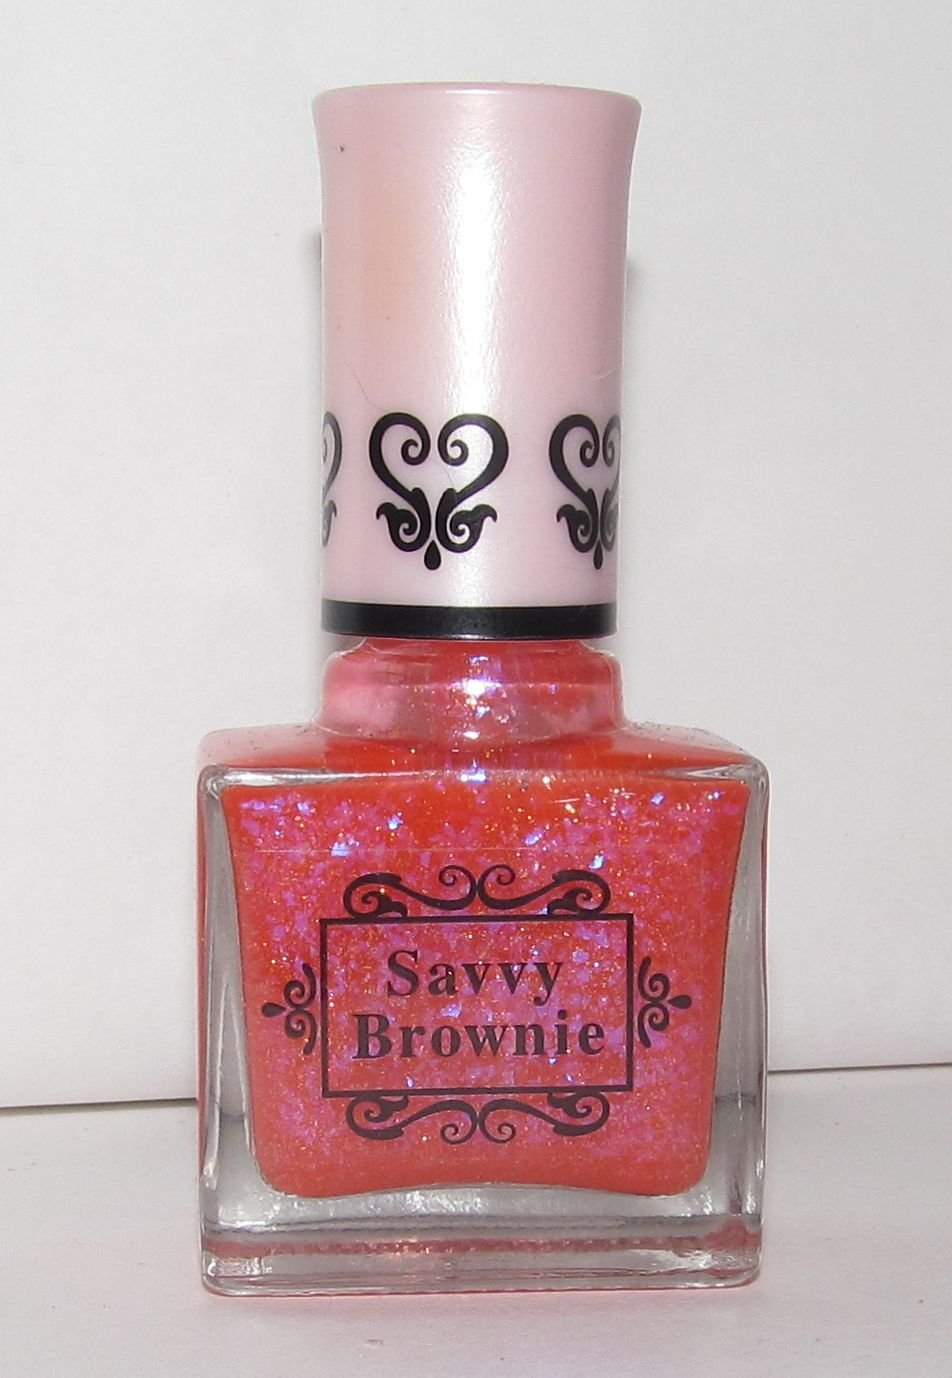 Savvy Brownie Nail Polish - 23 New